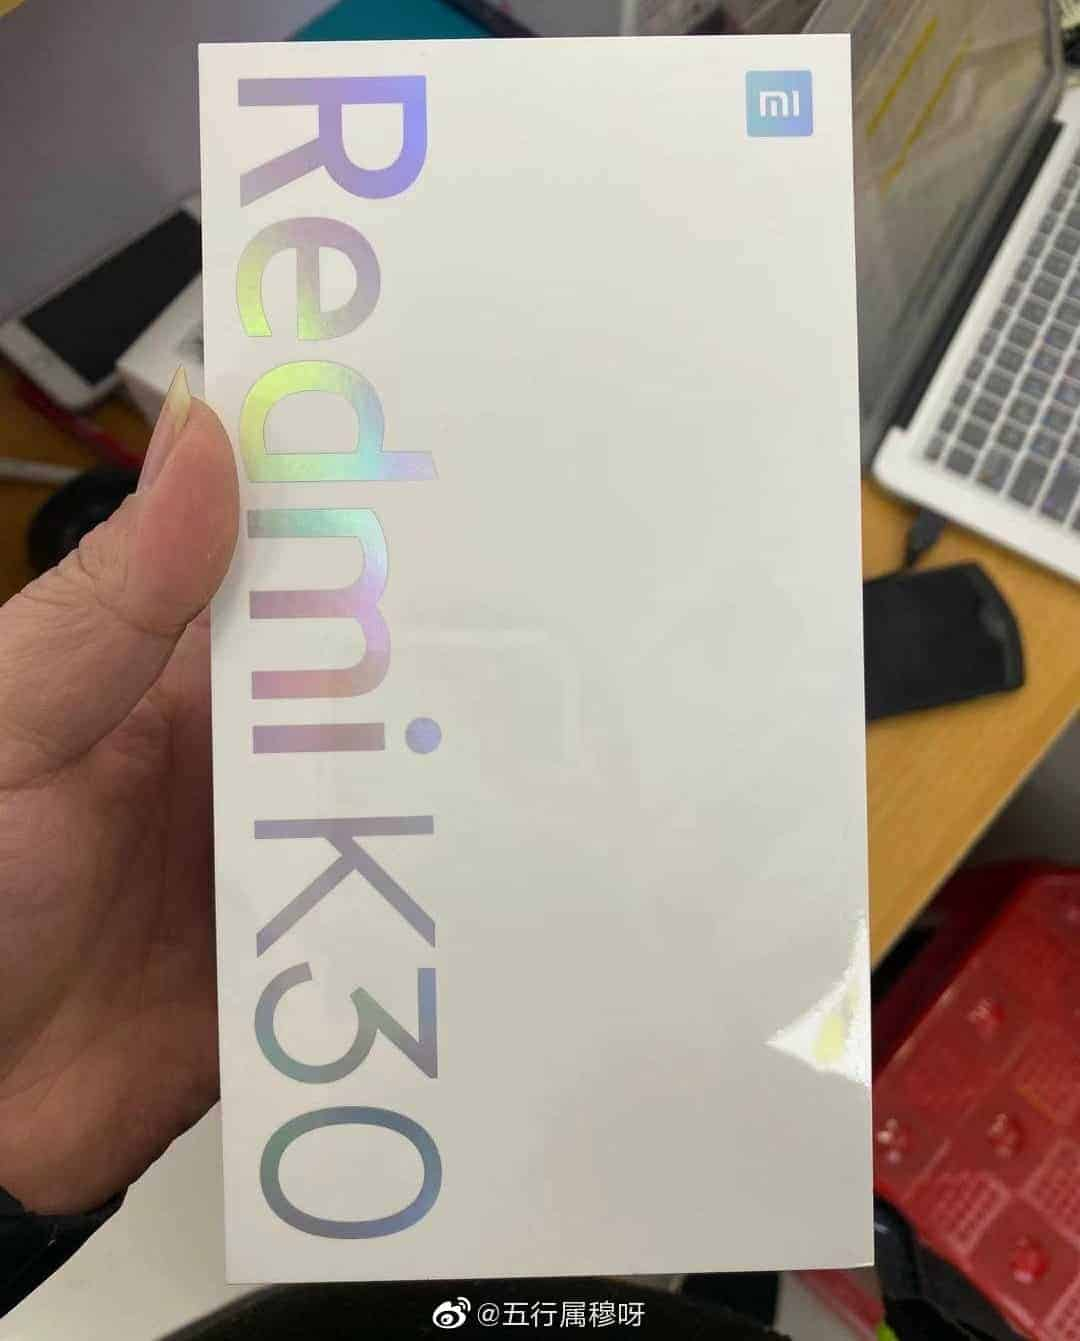 Redmi K30 retail box leak 1